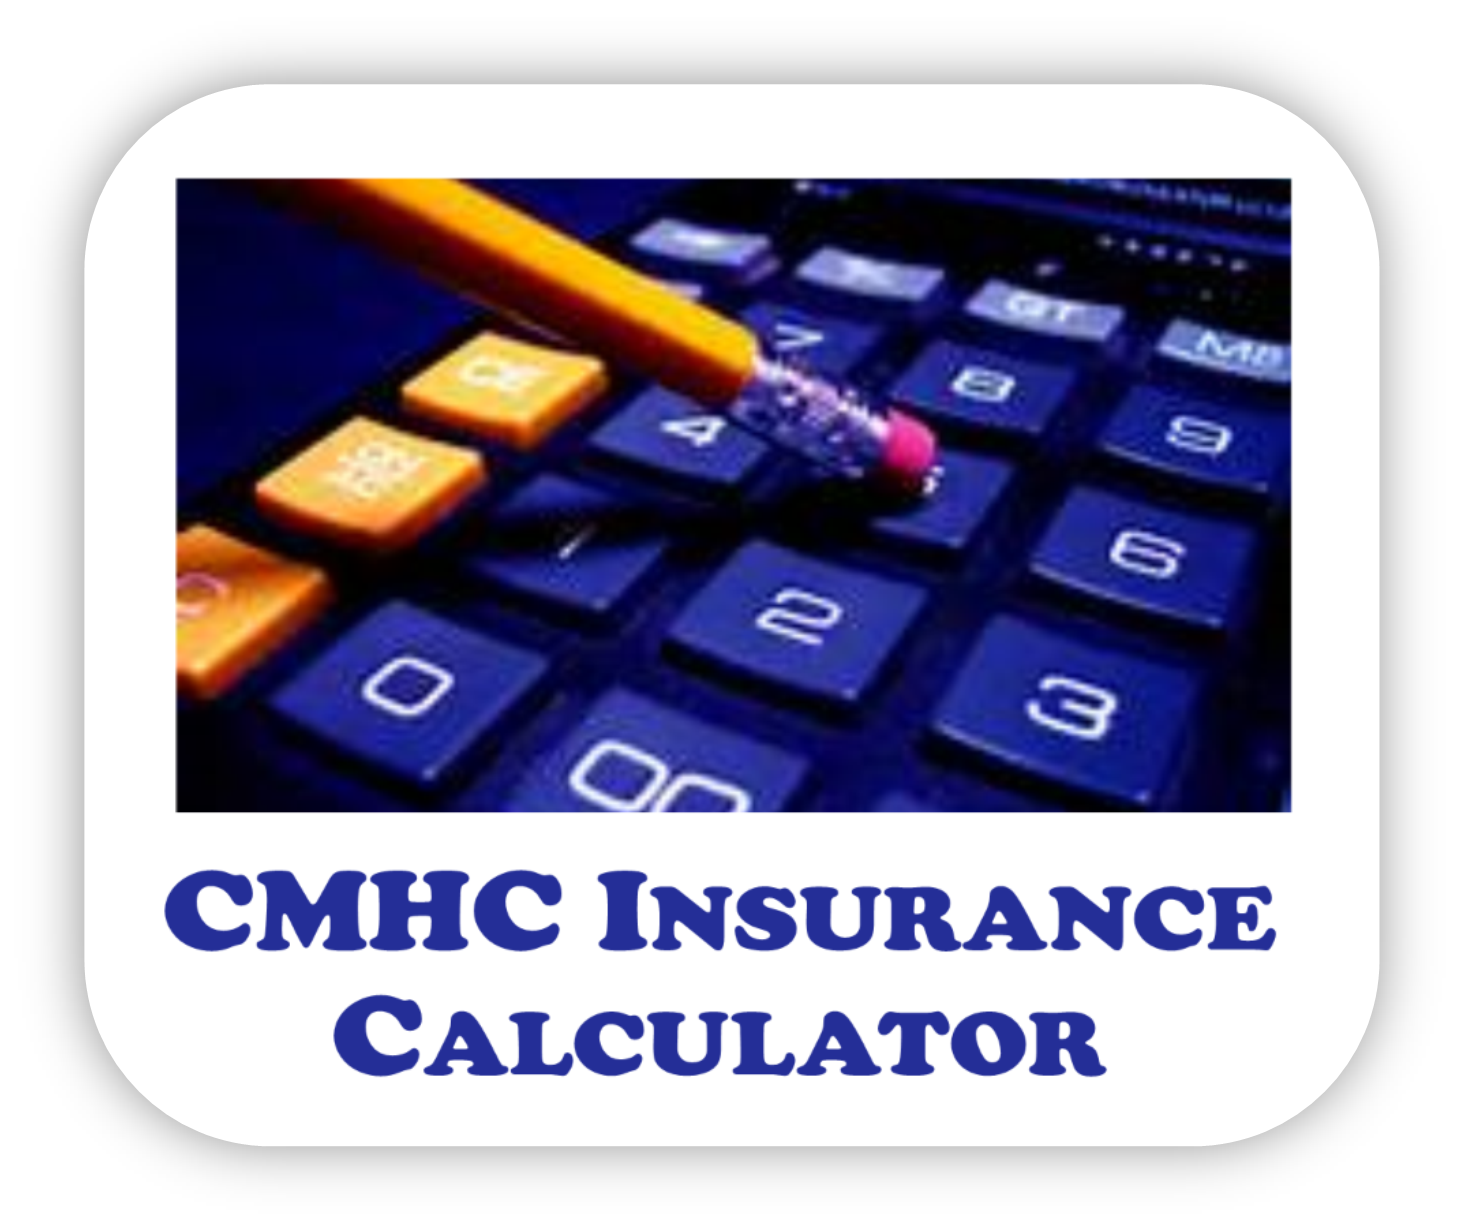 Insurance Calculator2.png